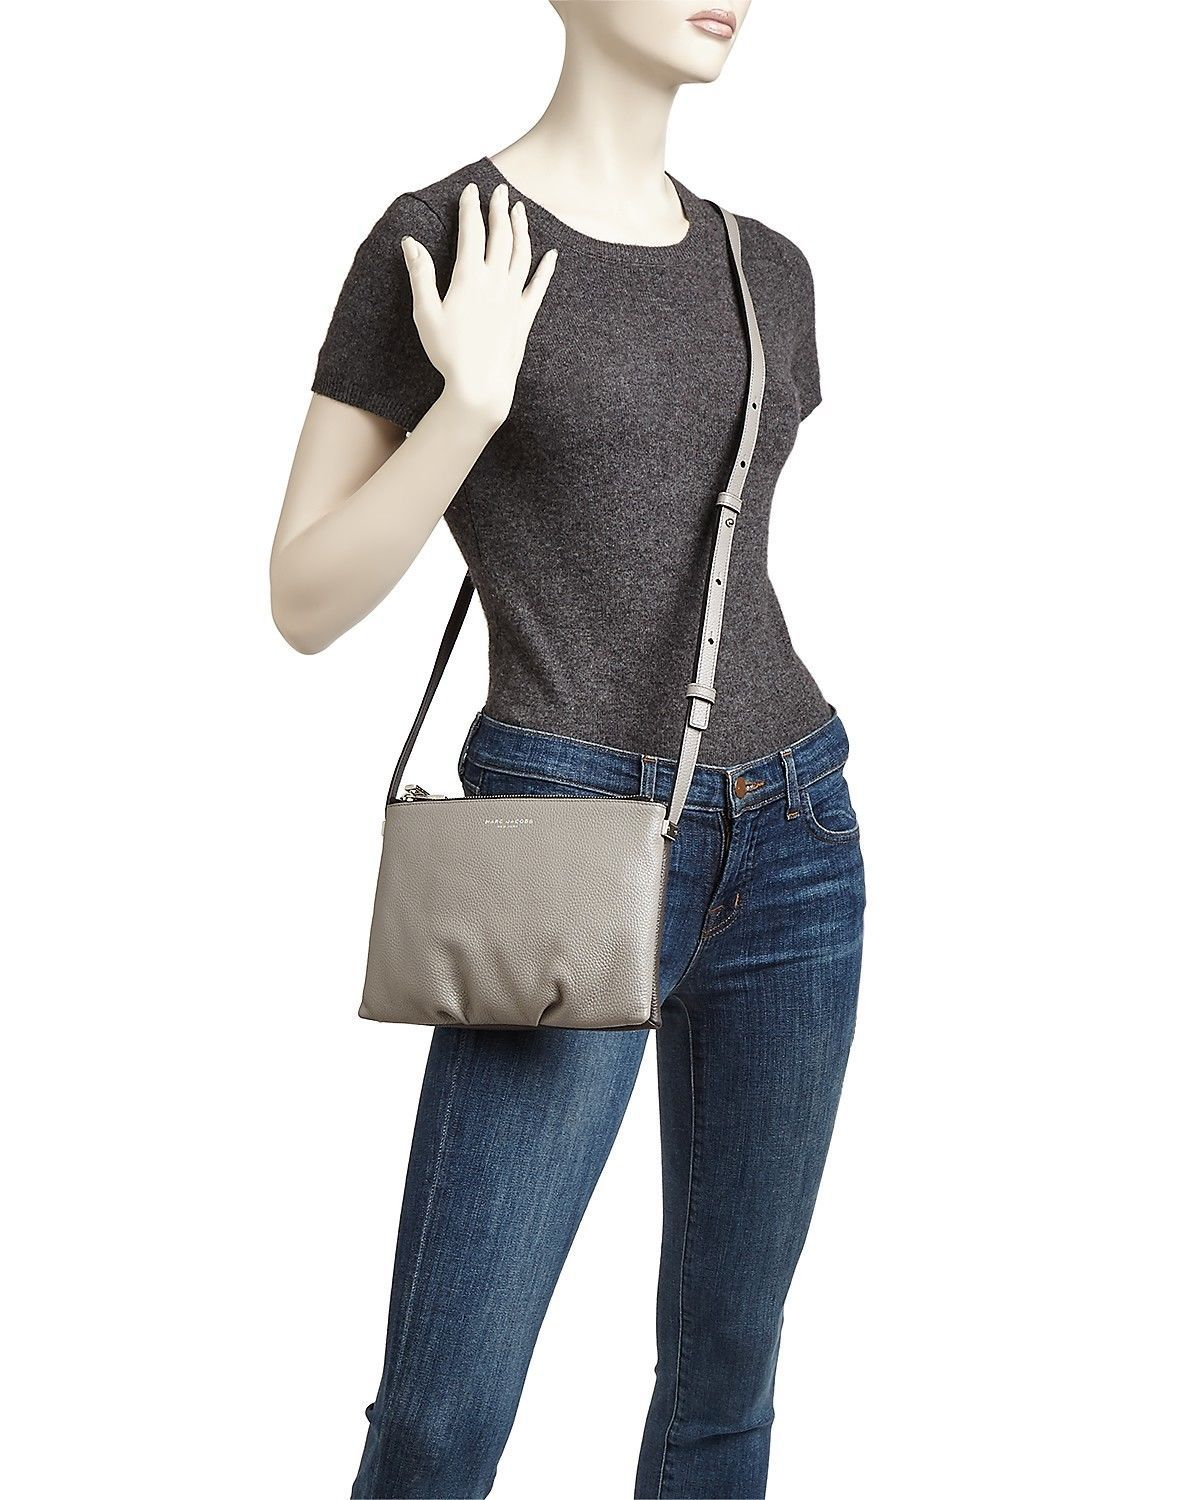 MARC By Marc Jacobs M0011227 The Standard Colorblock Leather Crossbody/Shoulder - $199.00